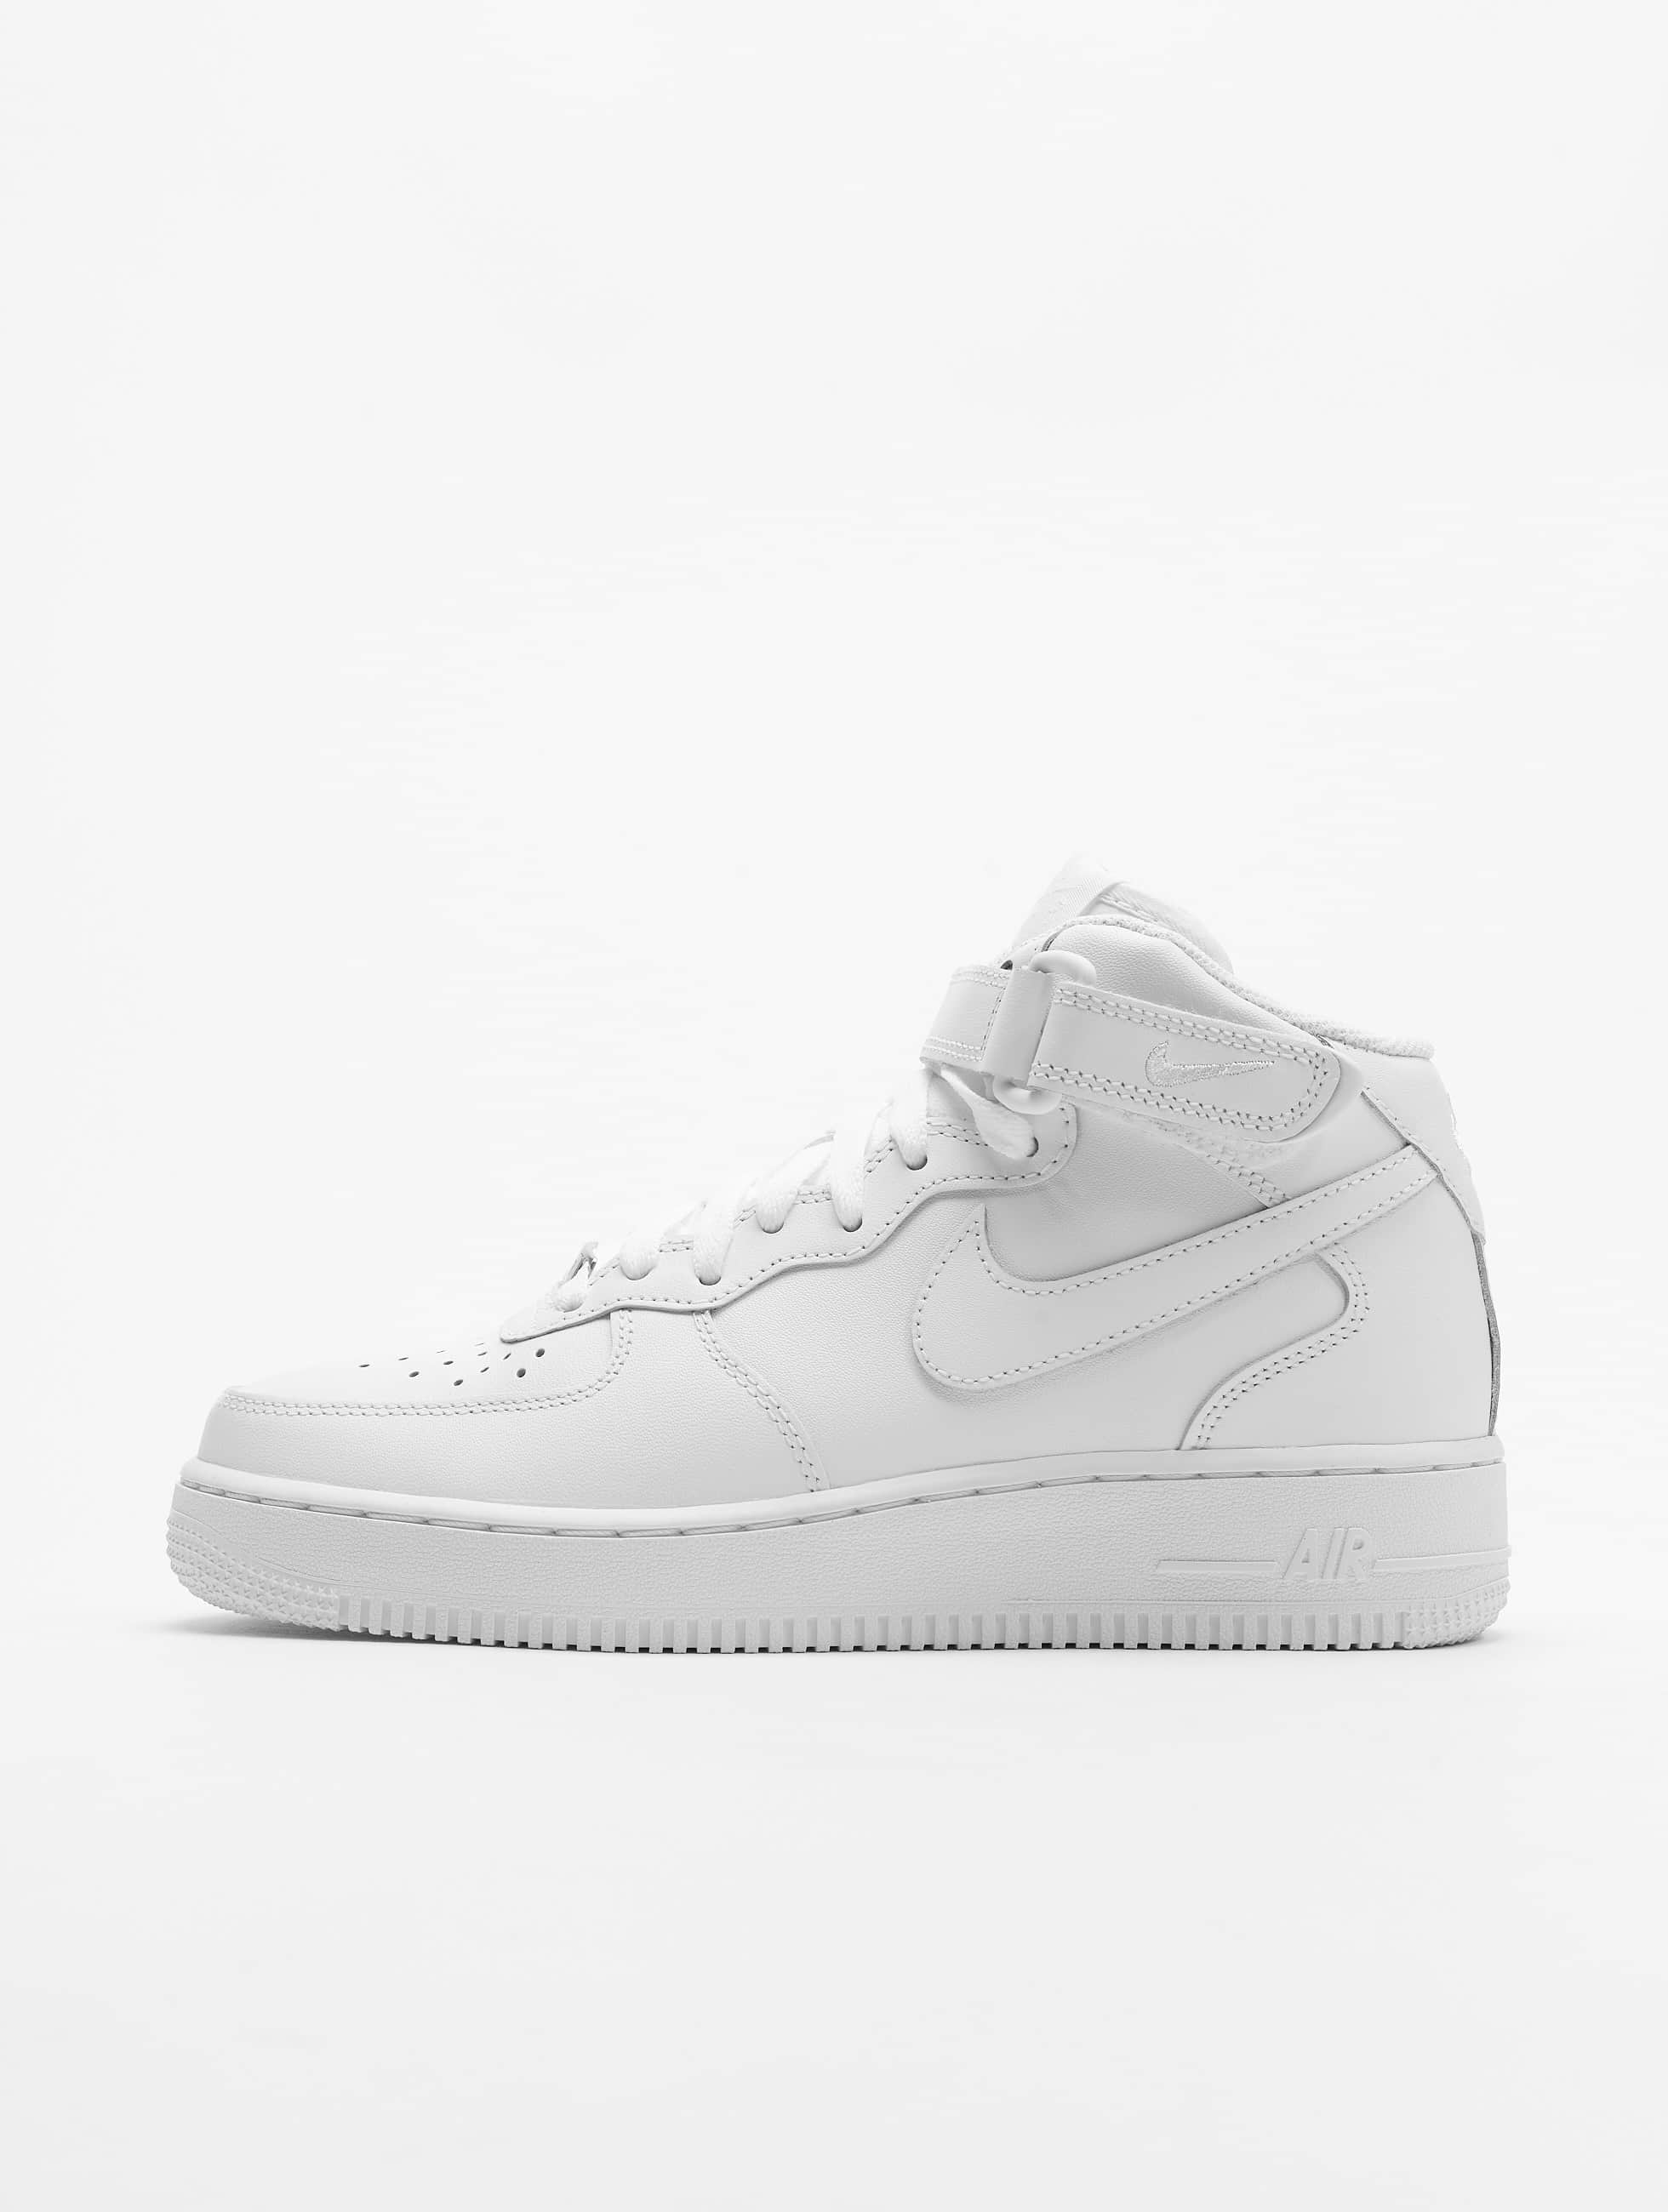 nike billigt chicago, Nike Air Force 1 Mid Dam Hyper Blå